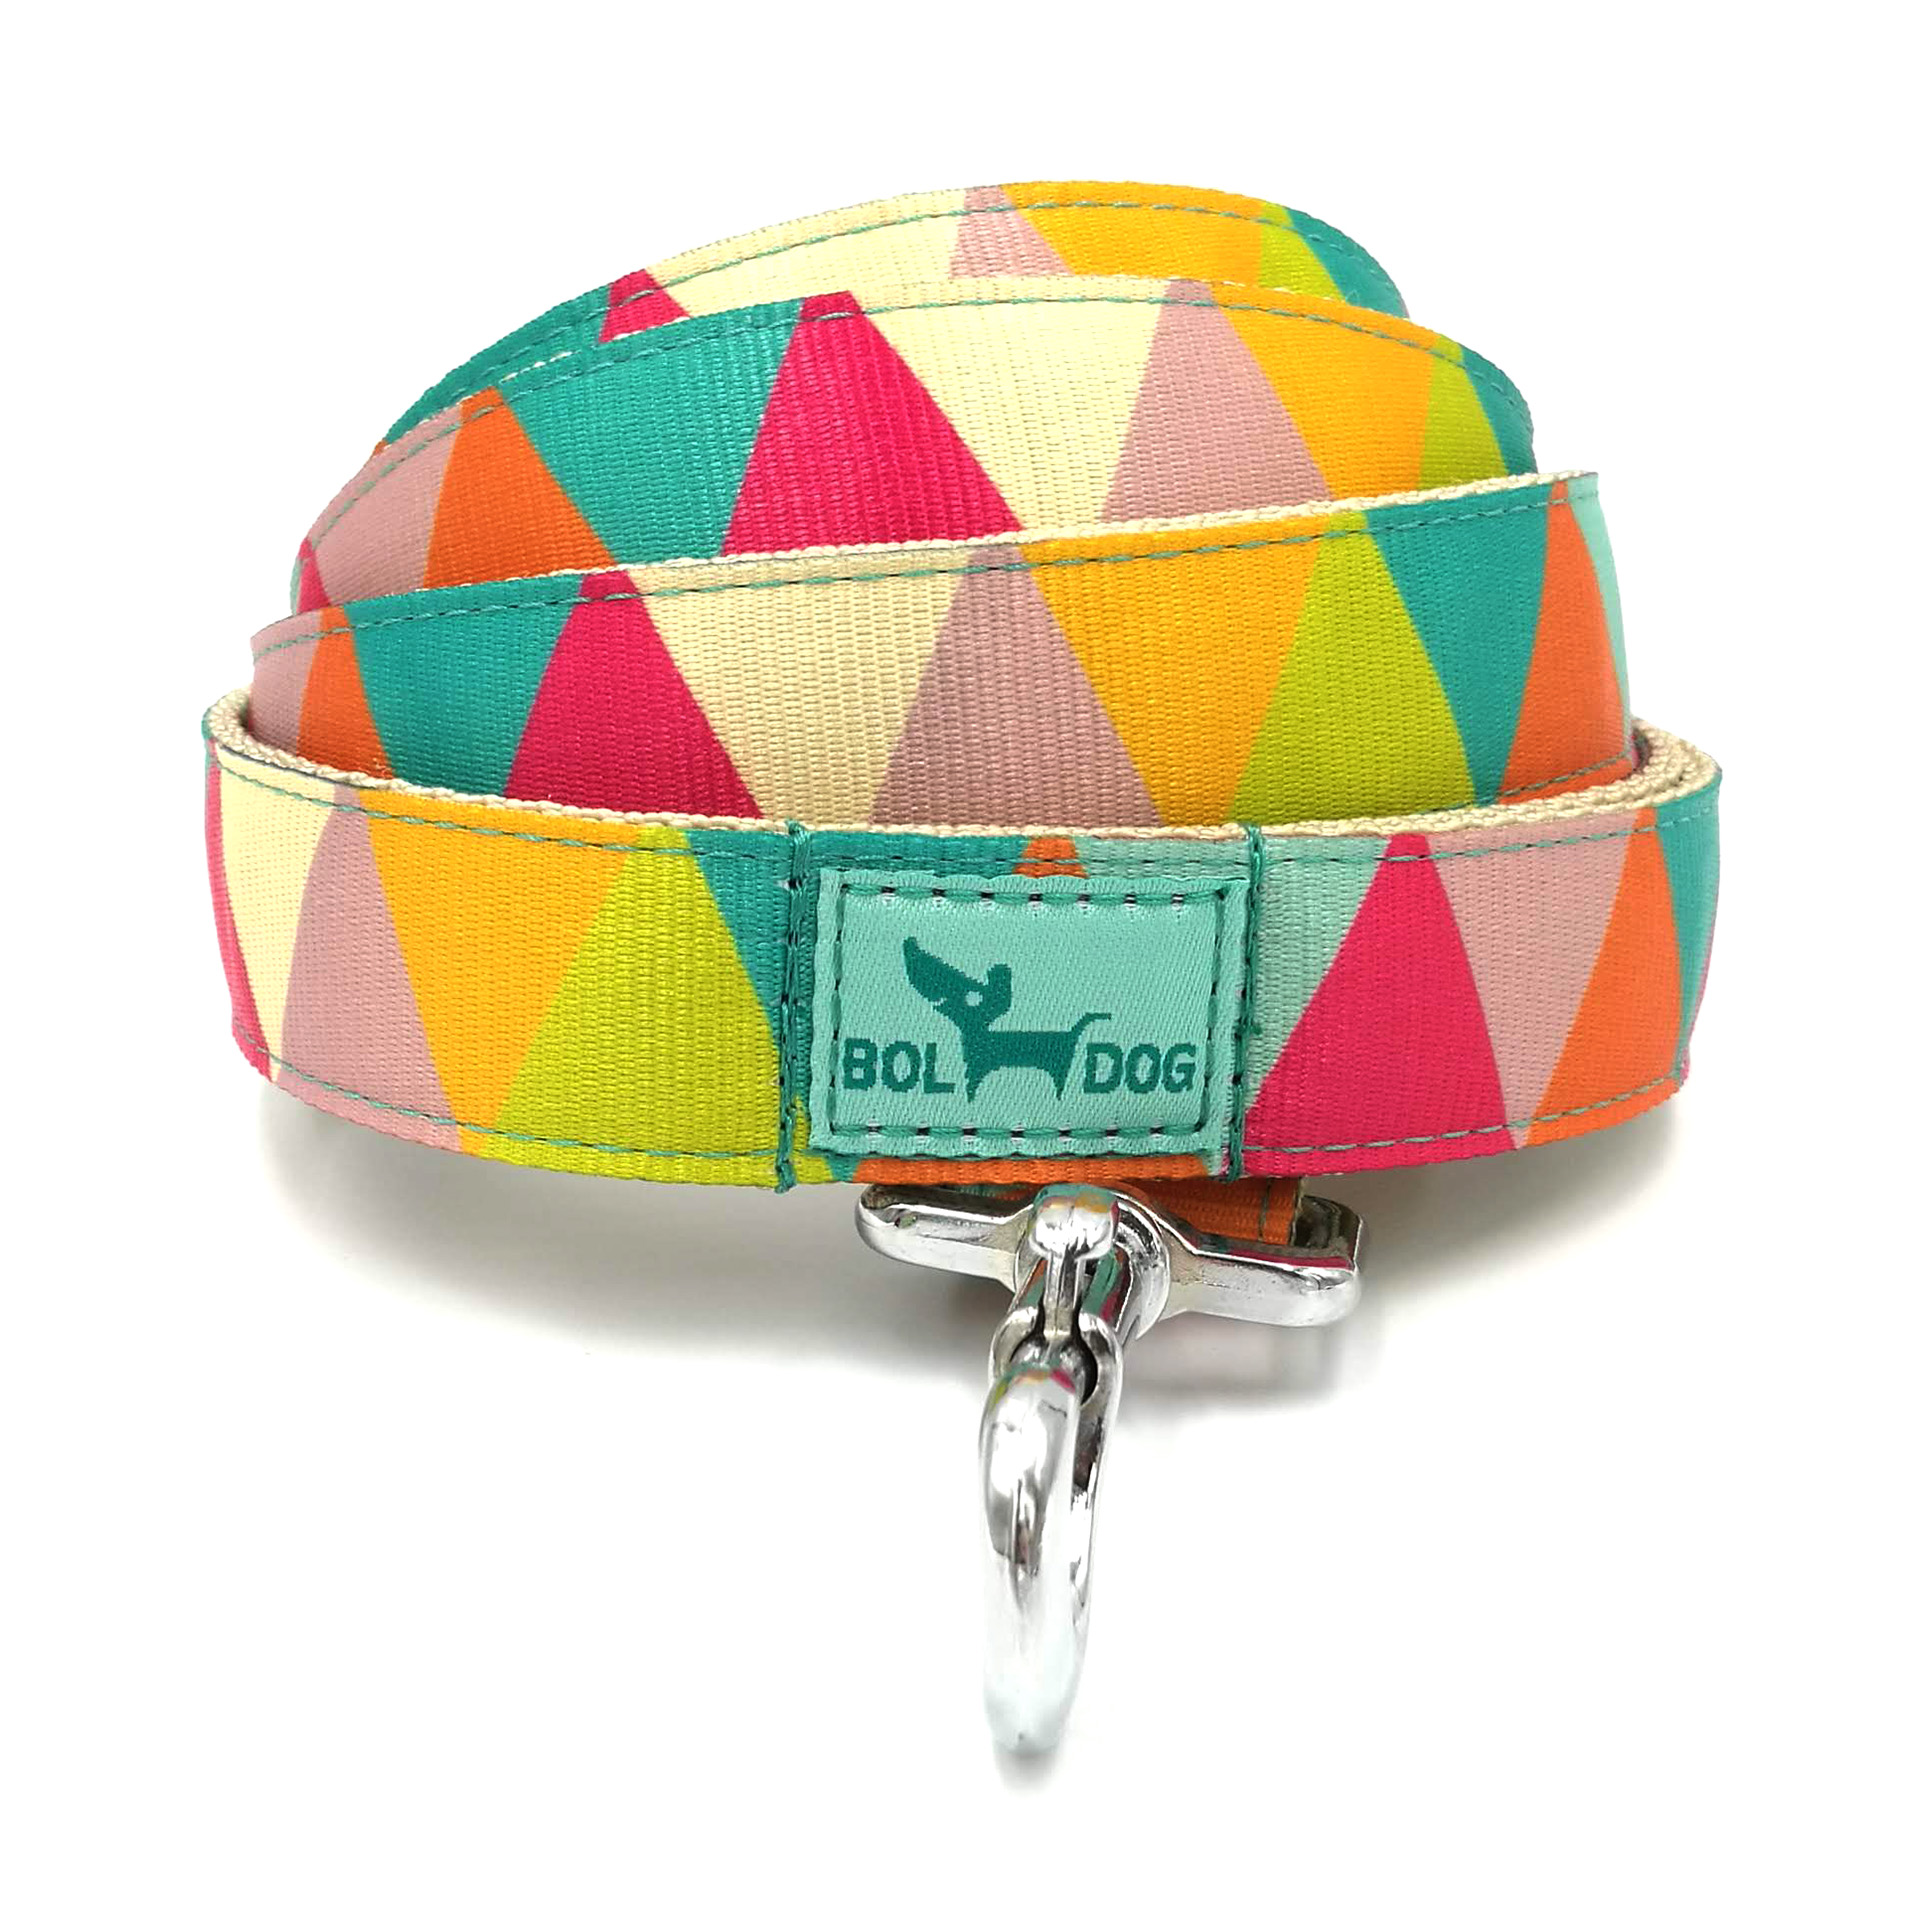 Zigzag girl dog leash